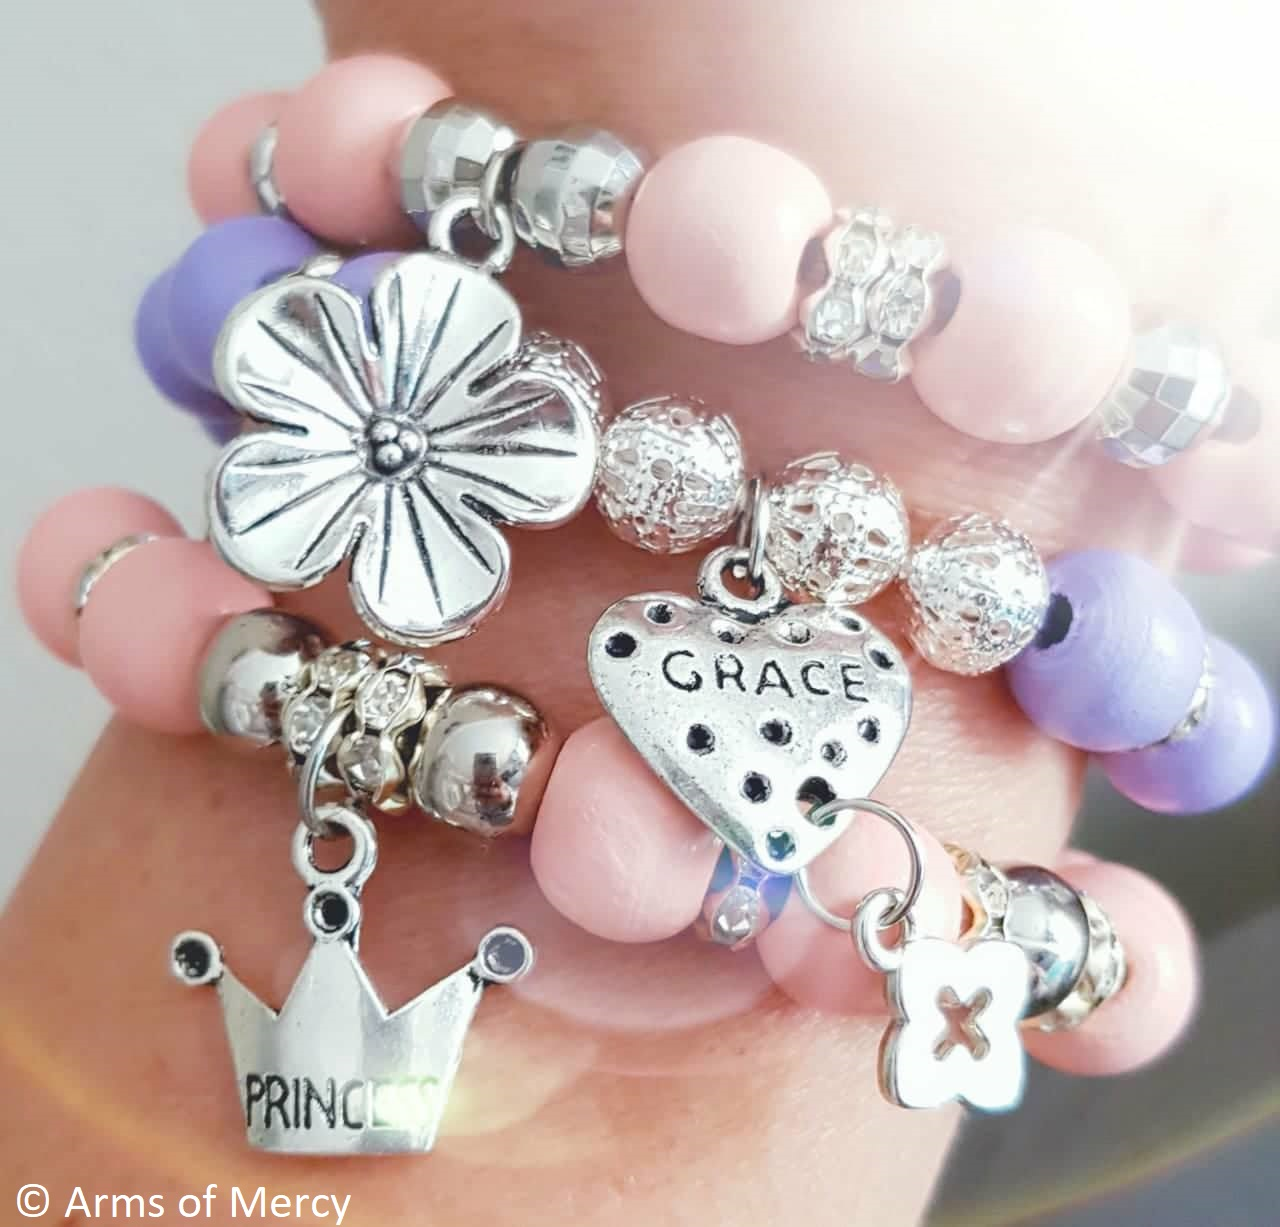 Arms of Mercy - Princess Blossom Bracelets for Mihla Engelbrecht